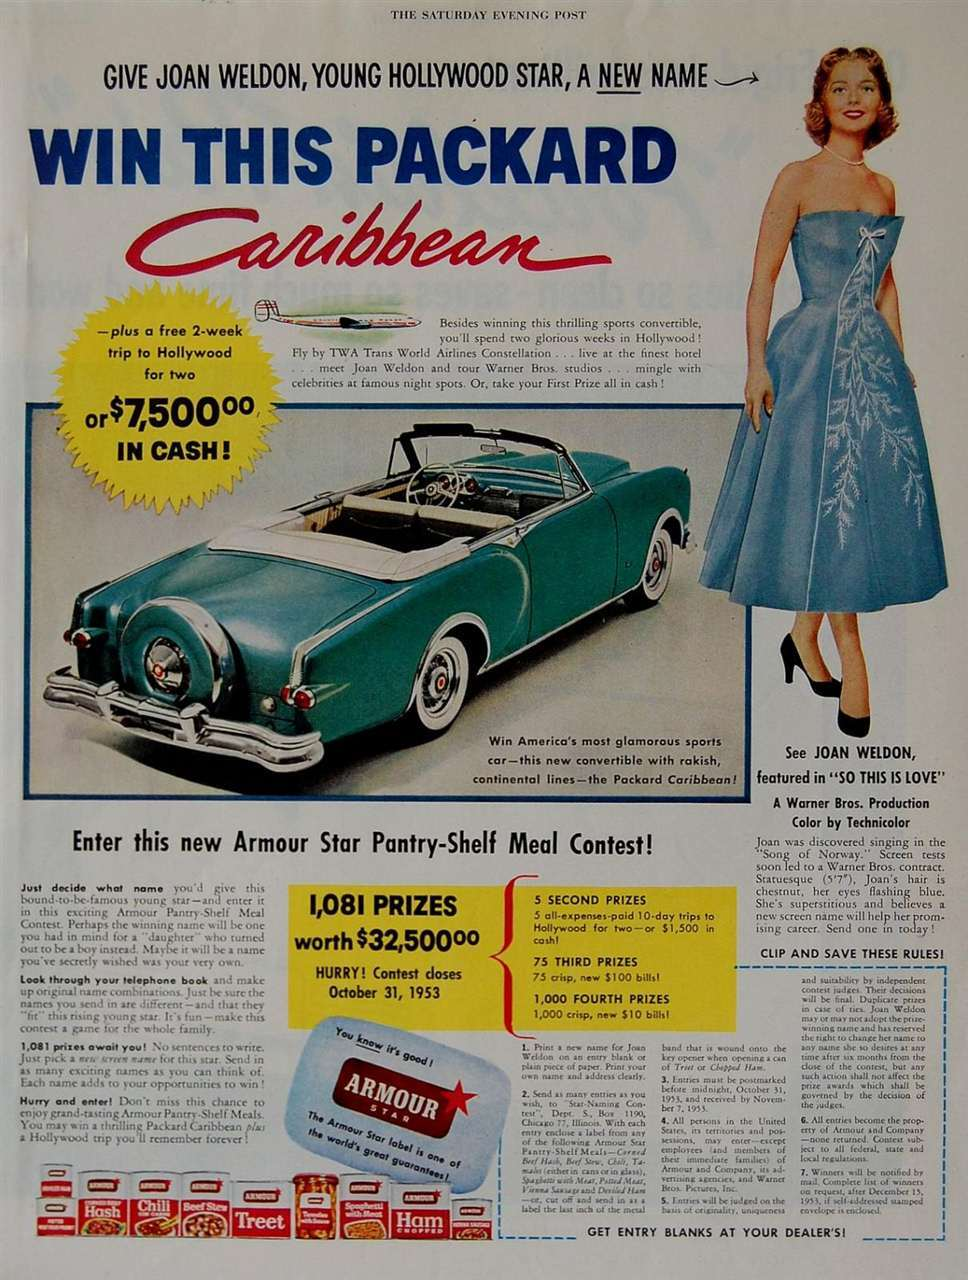 Win This Packard!